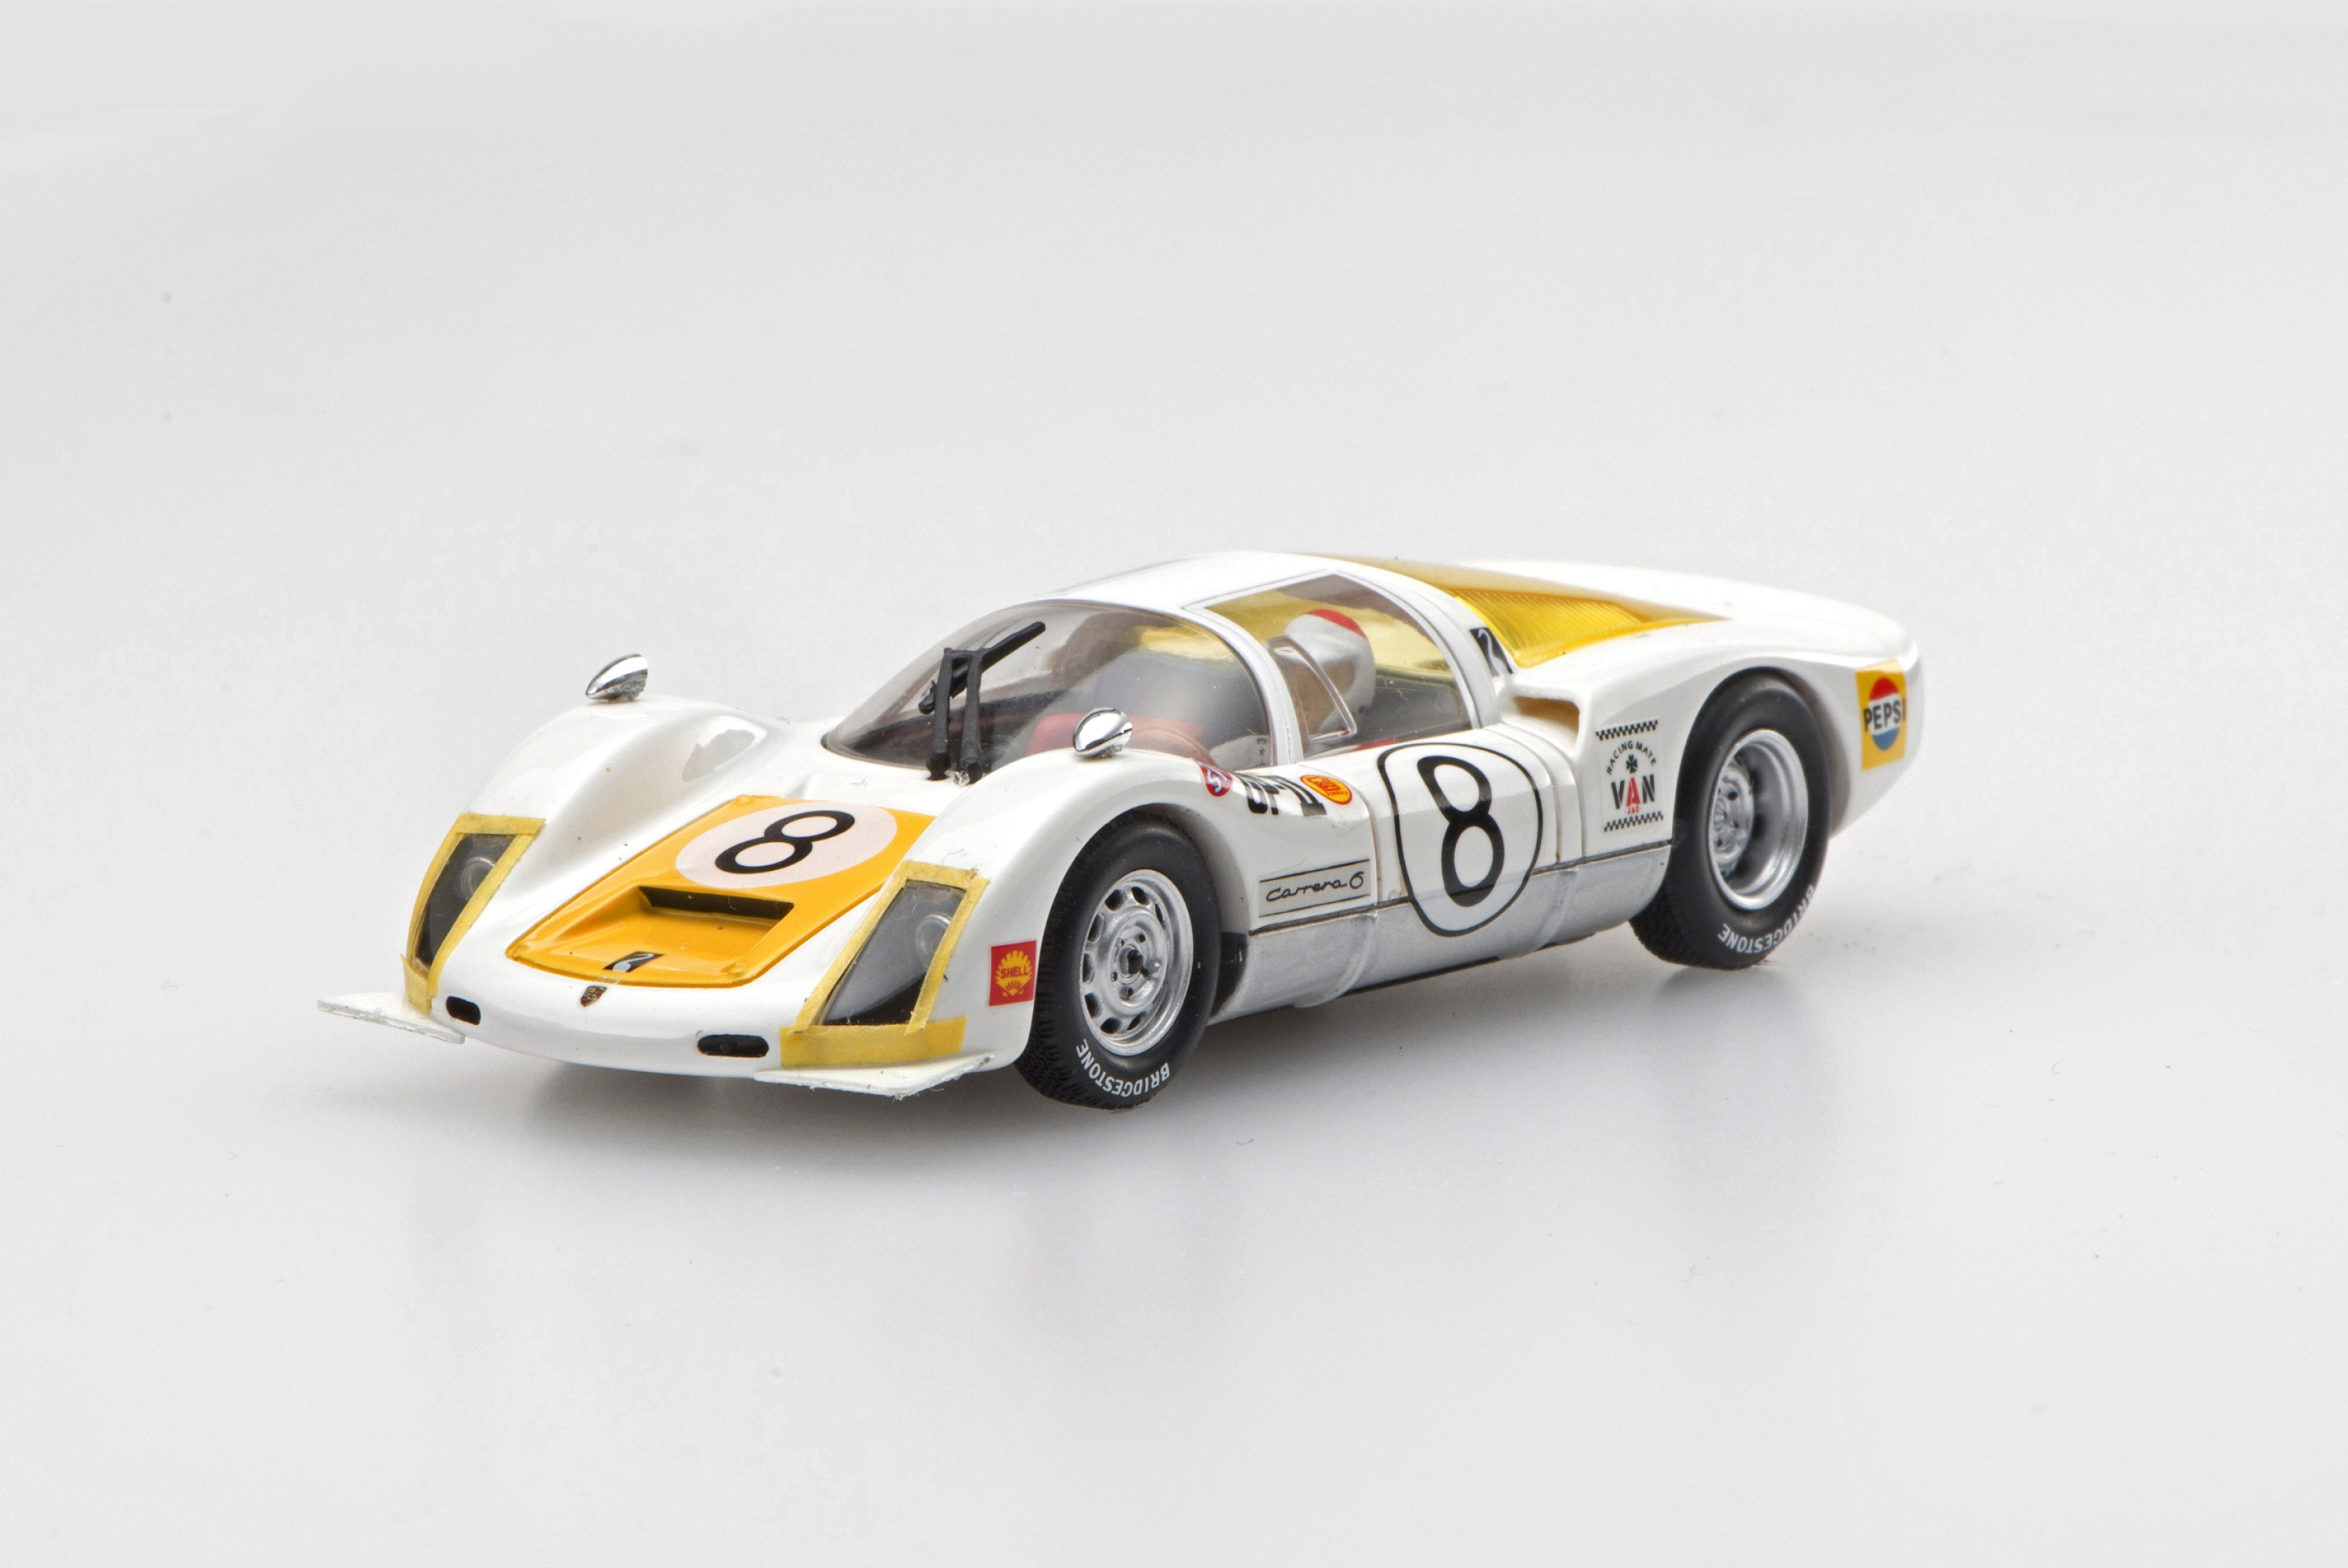 ☆予約品☆【45344】Porsche 906 1967 Japan GP Winner IKUZAWA No.8 【RESIN】